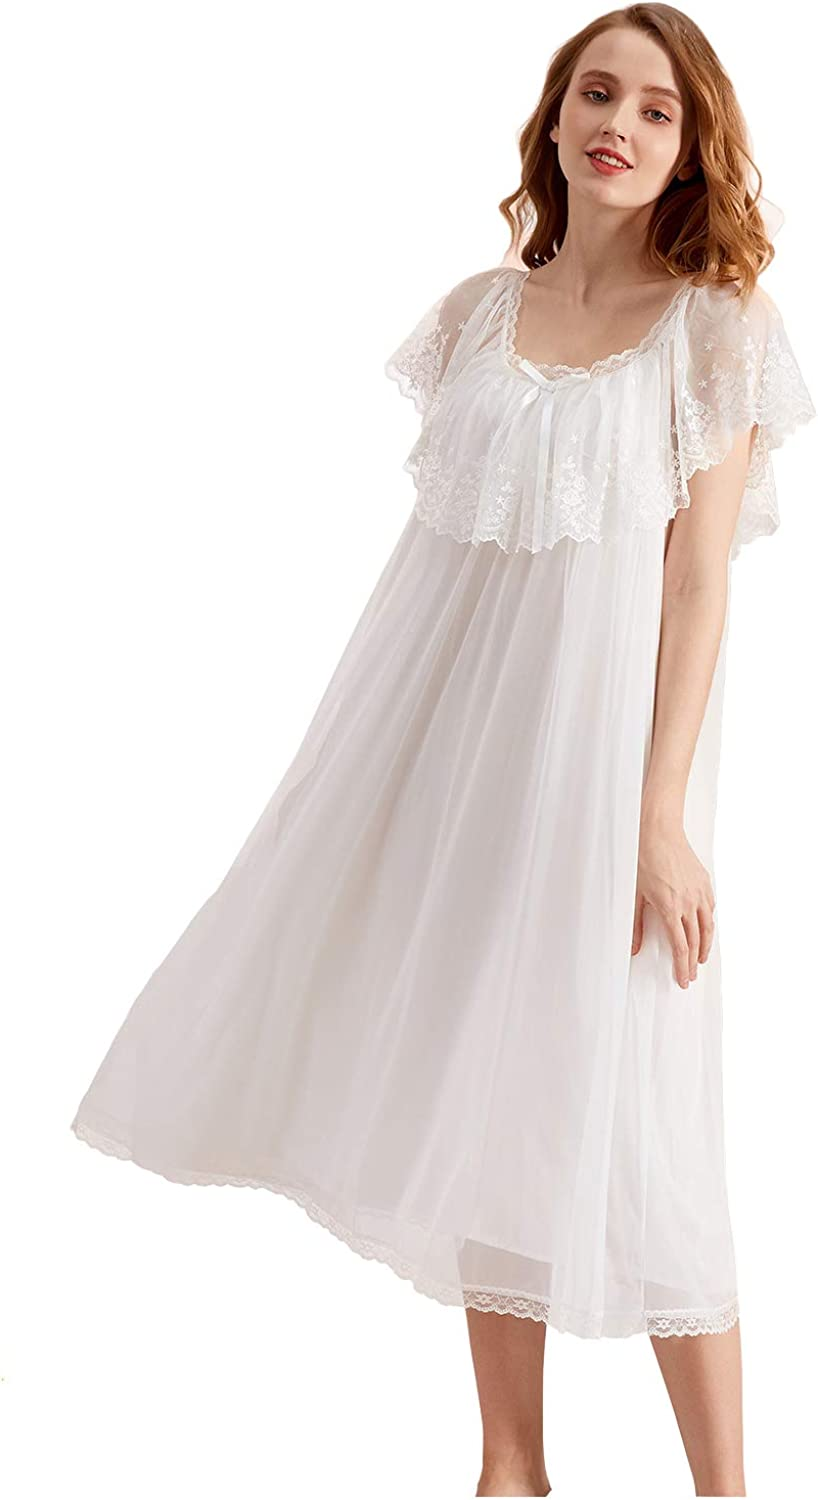 Super Soft Vintage Victorian Palace Style Viscos Max 88% OFF Modal Nightgown New Orleans Mall